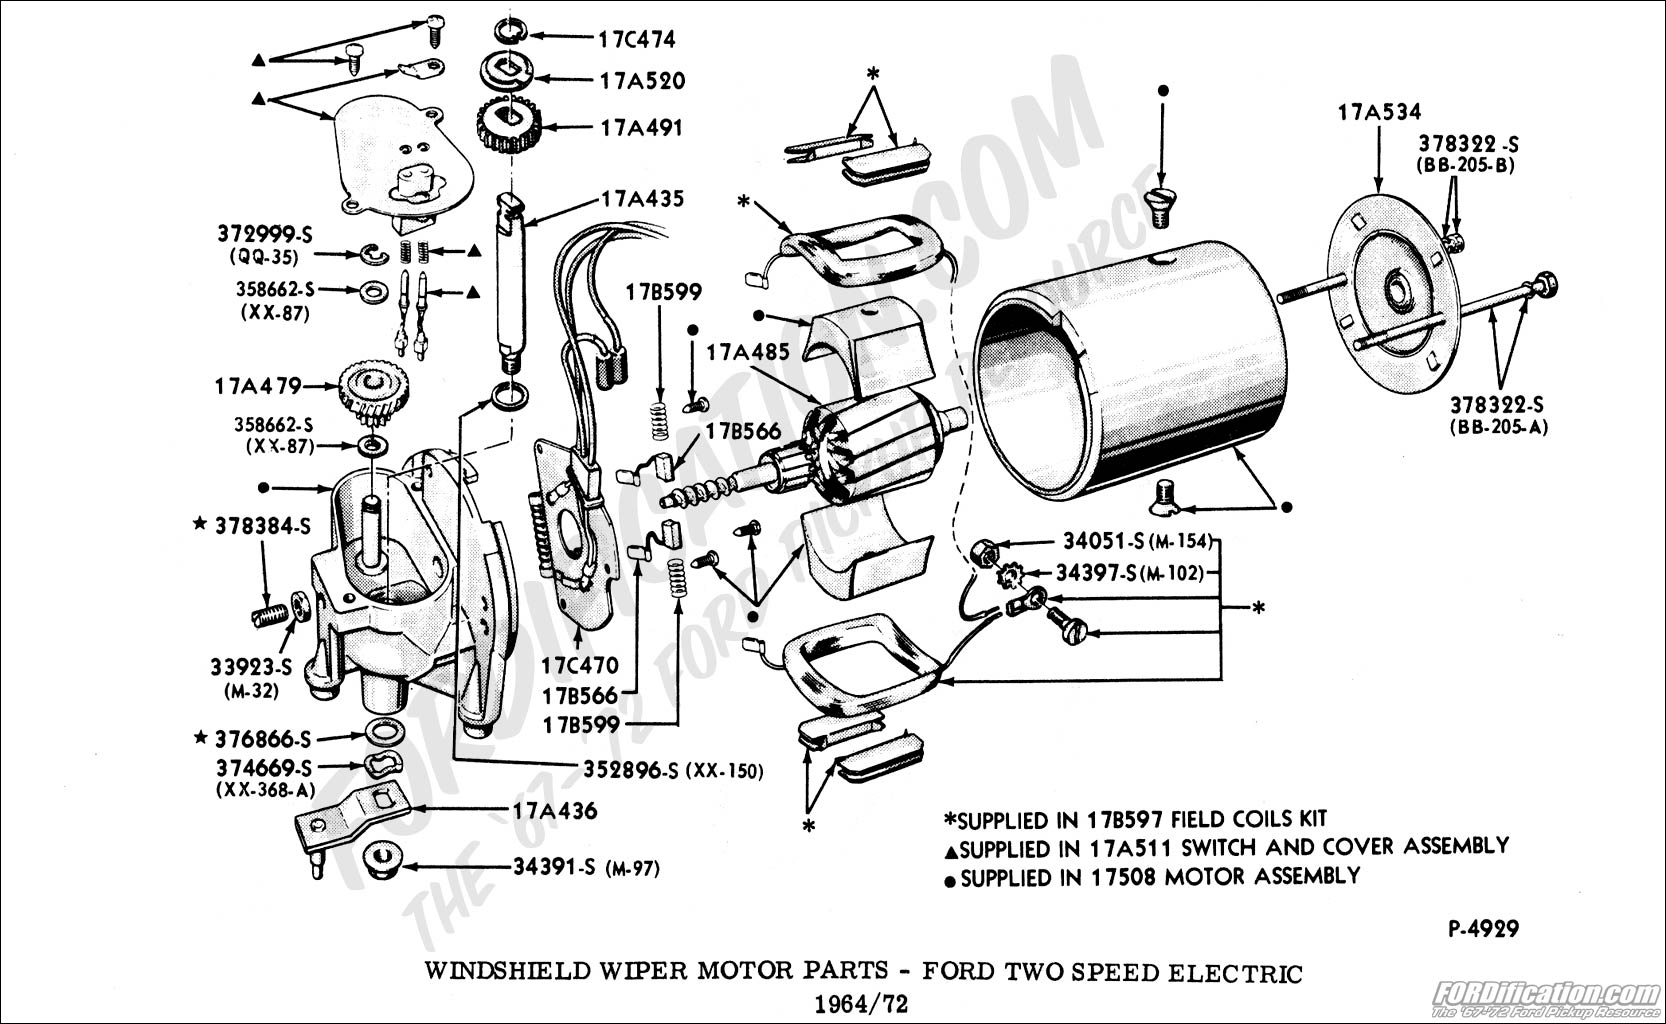 hight resolution of windshield wiper motor parts